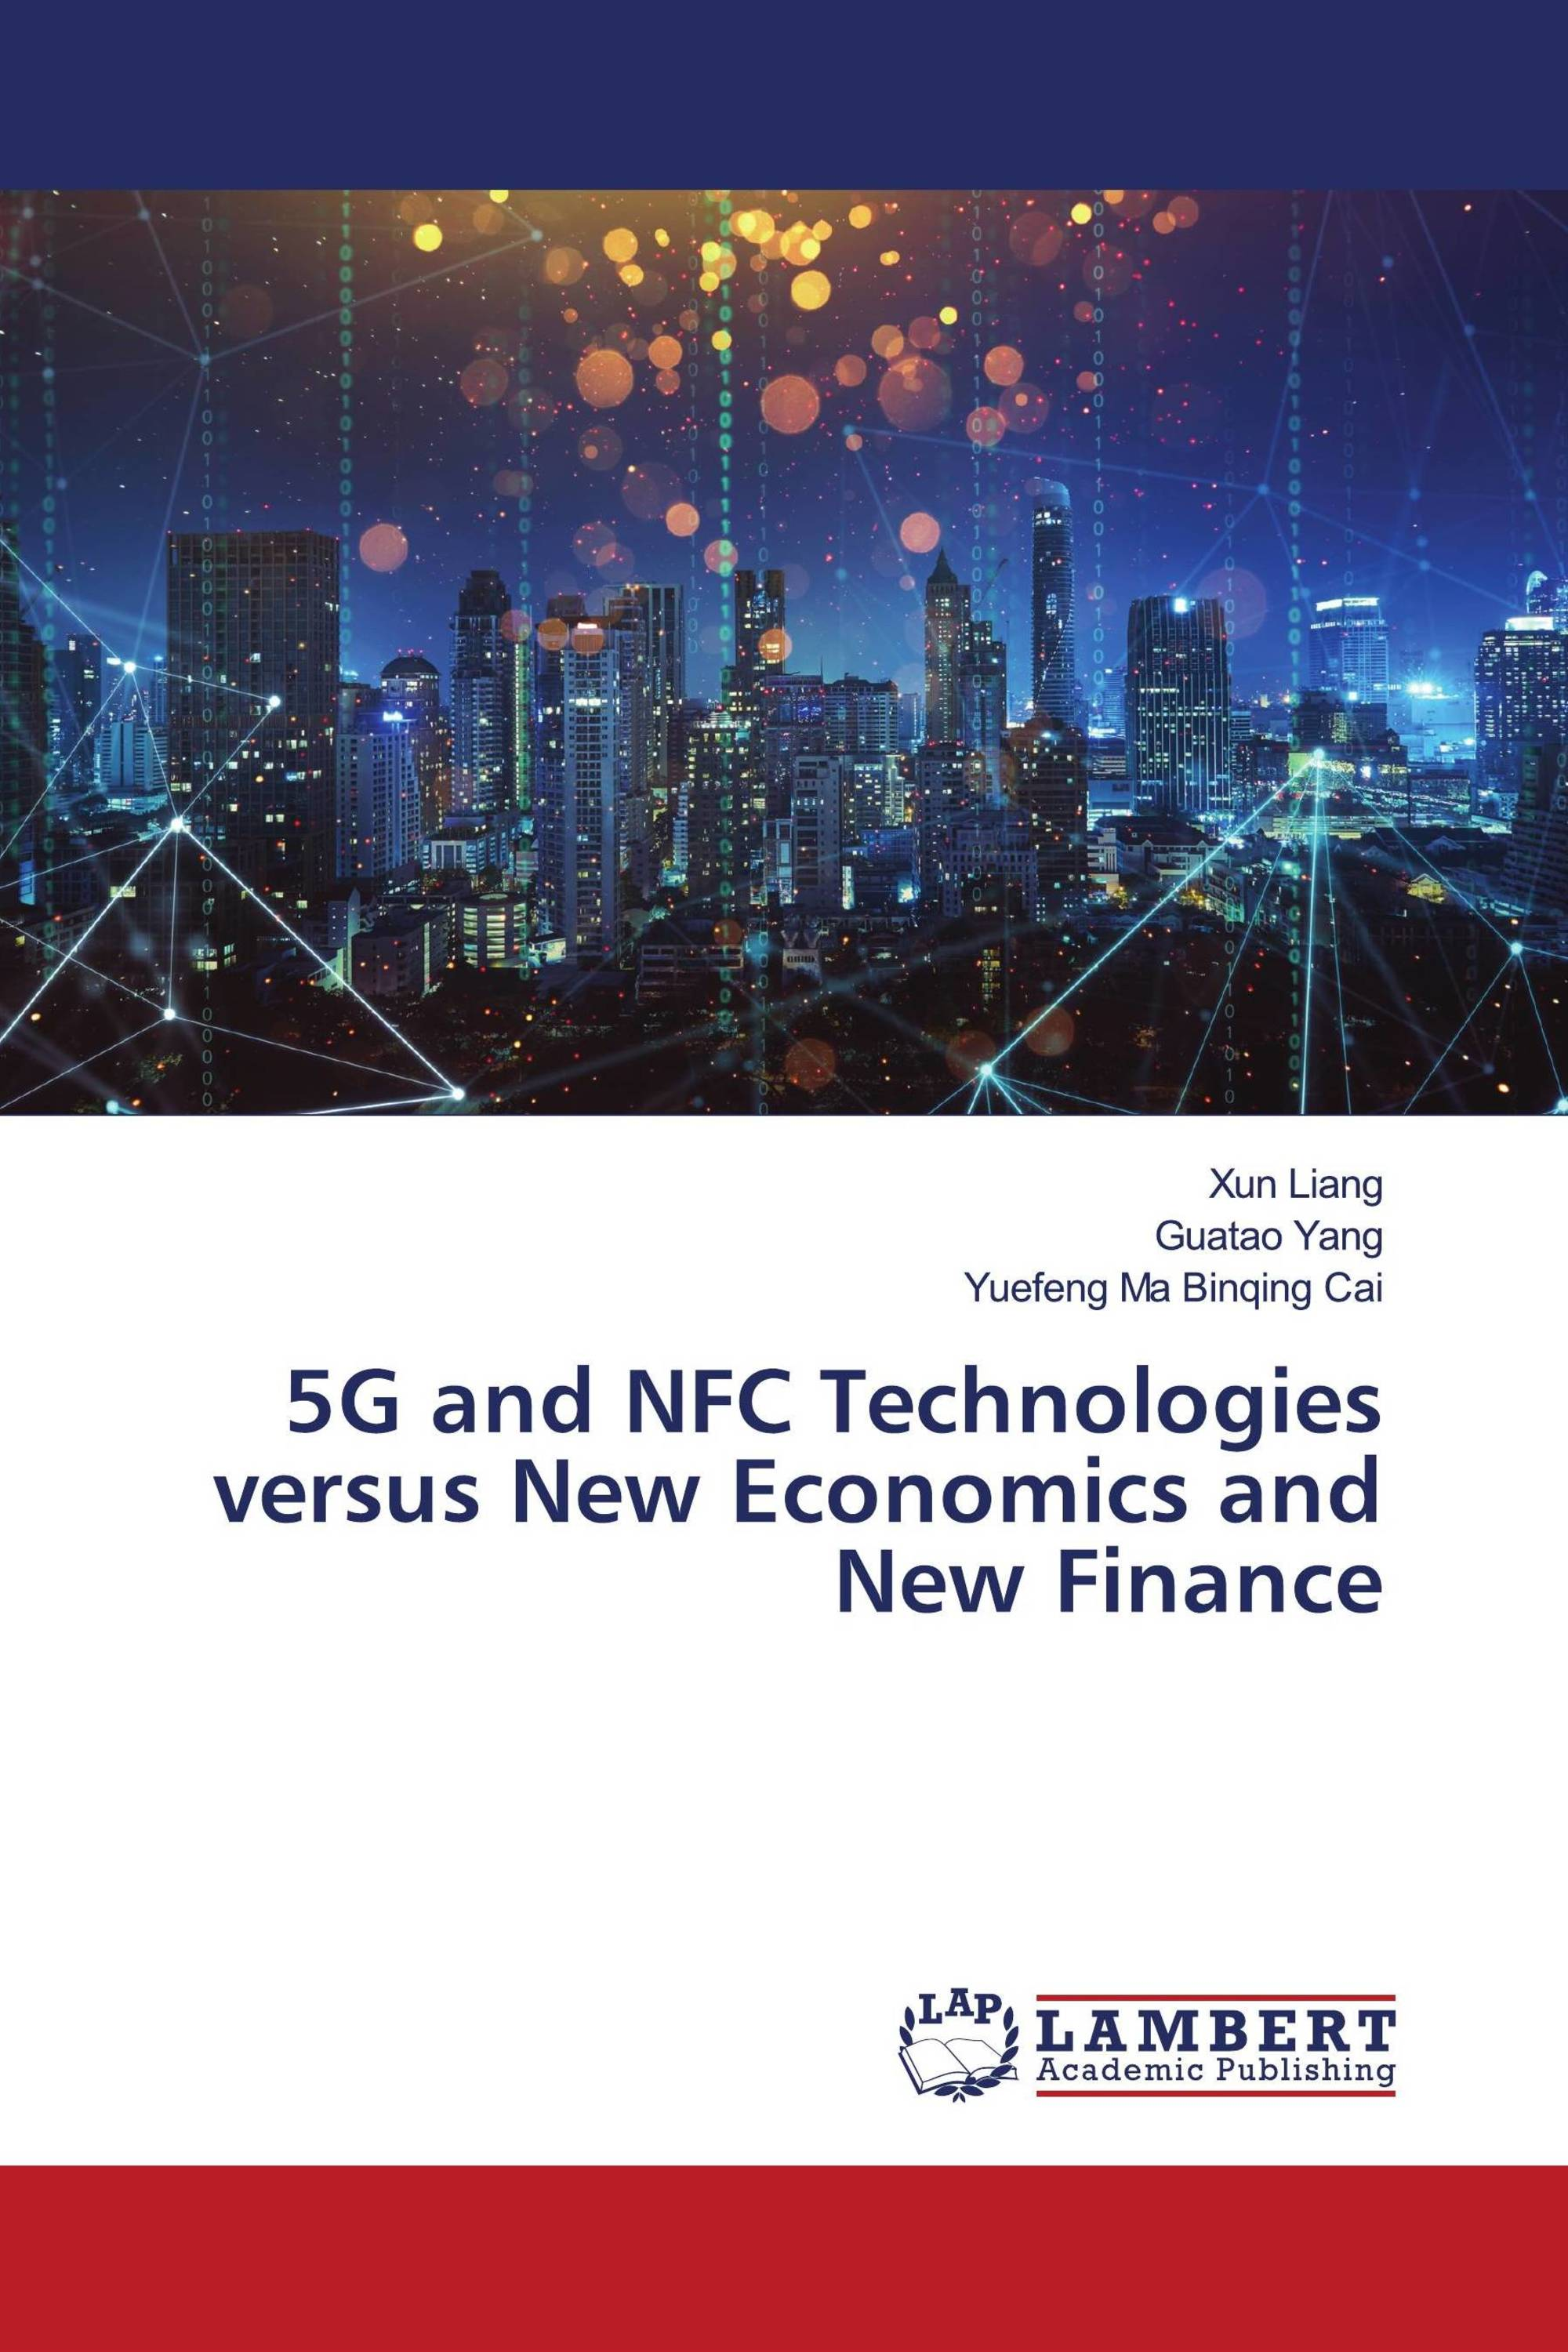 5G and NFC Technologies versus New Economics and New Finance